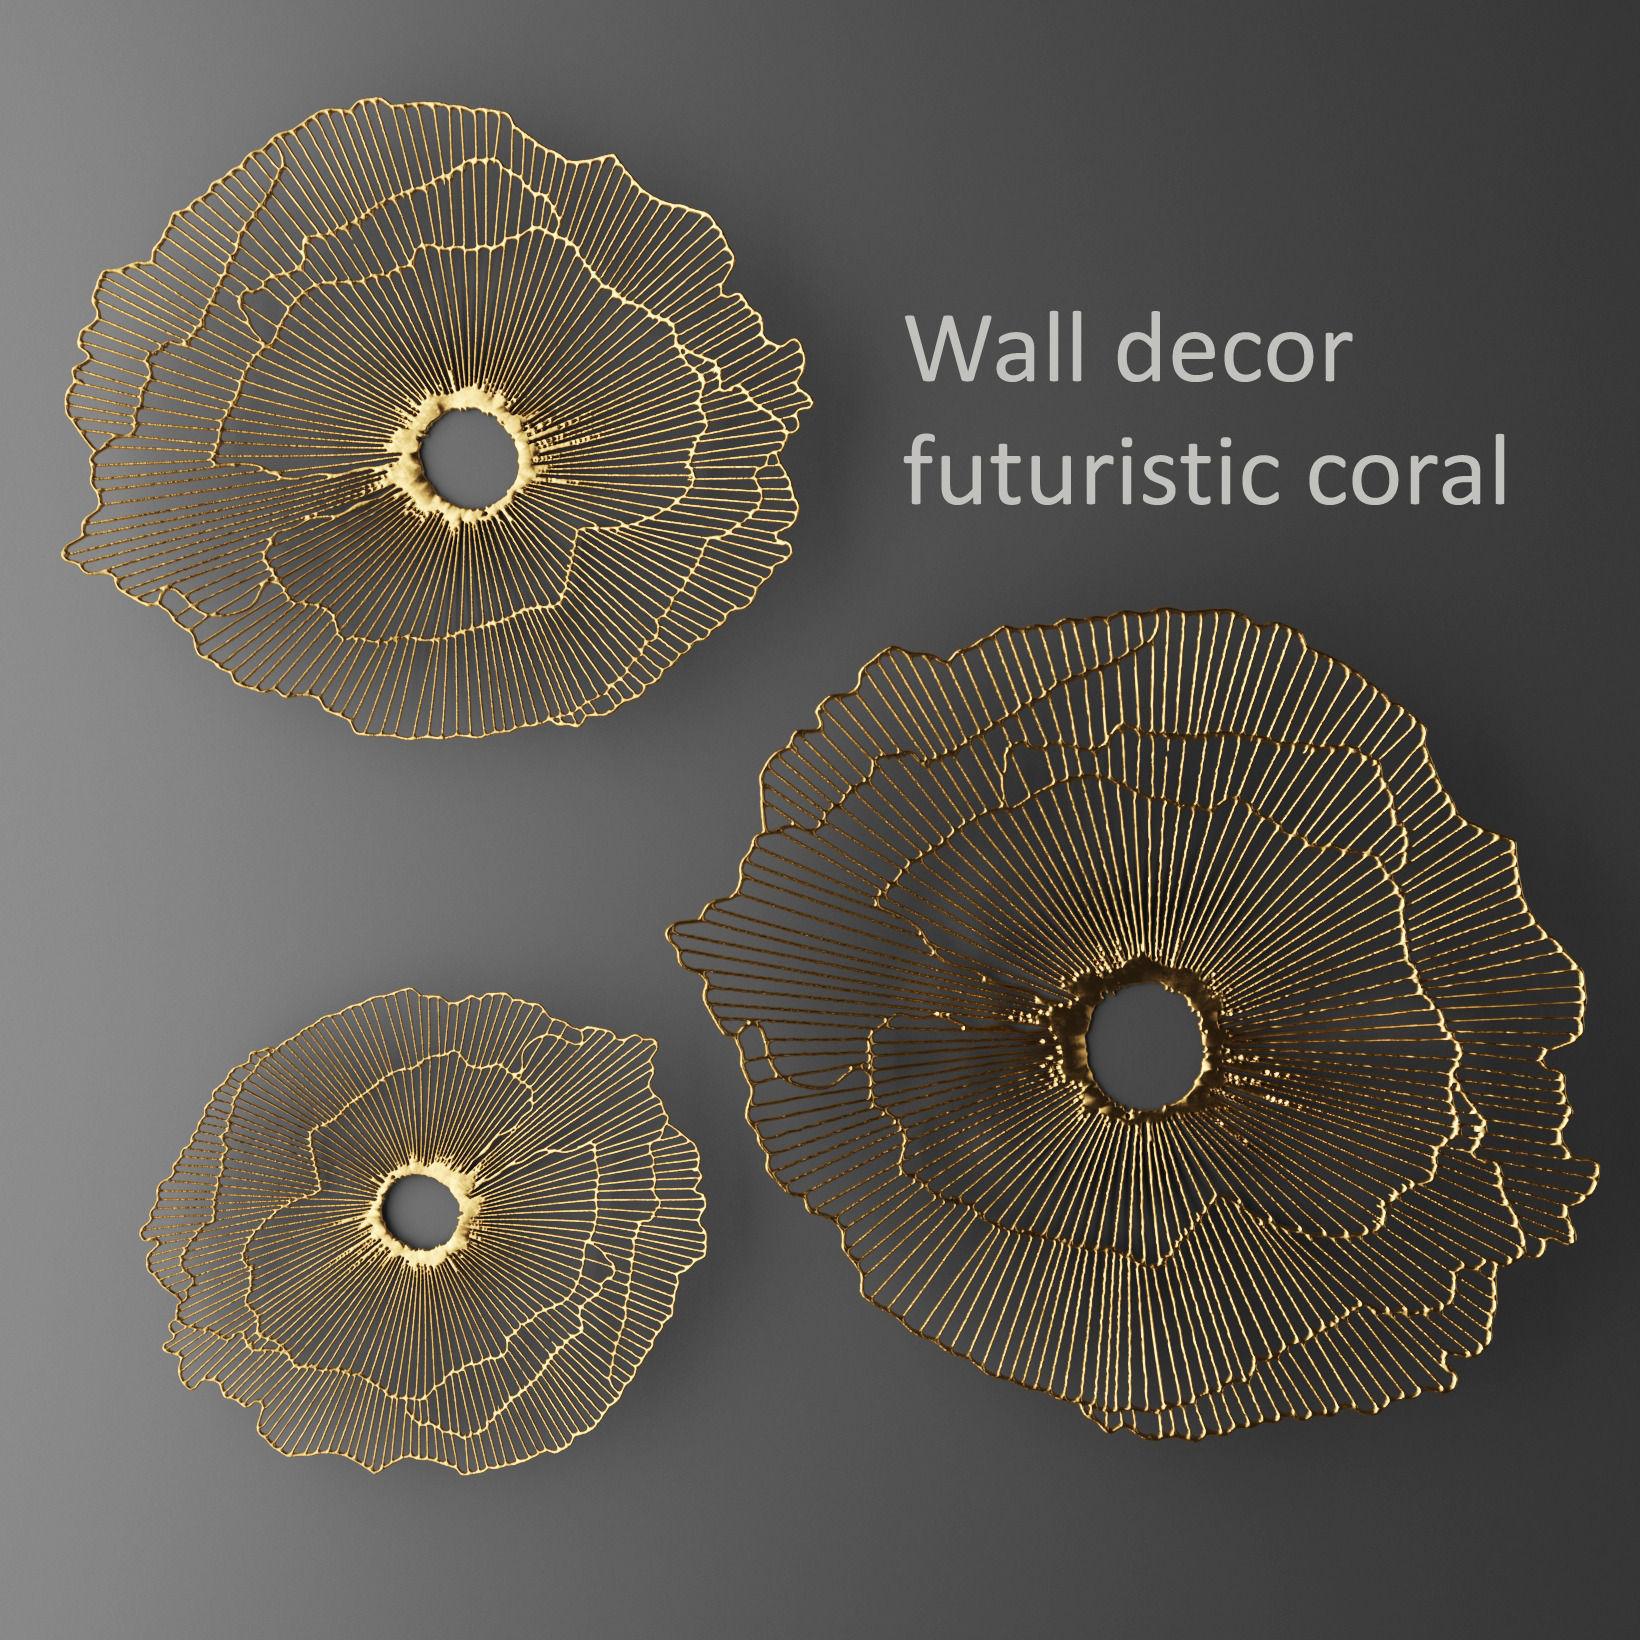 Wall decor futuristic coral Panel 3D | CGTrader